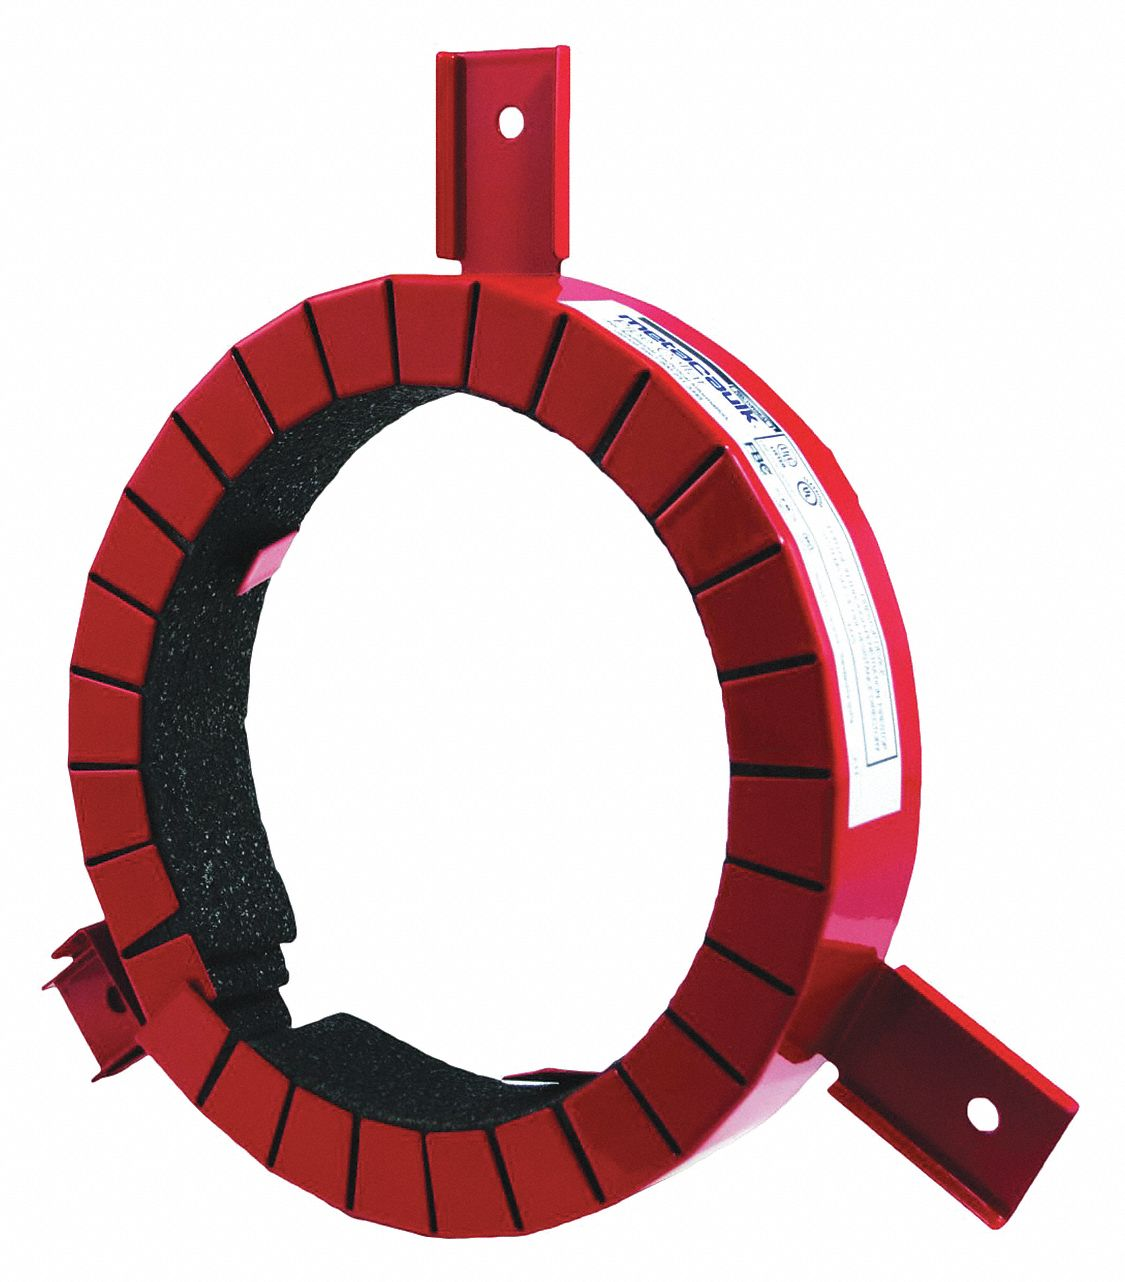 Pipe Collar, Metal Pipe, Plastic Pipe Application, Up to 3 hr Fire Rating, Red